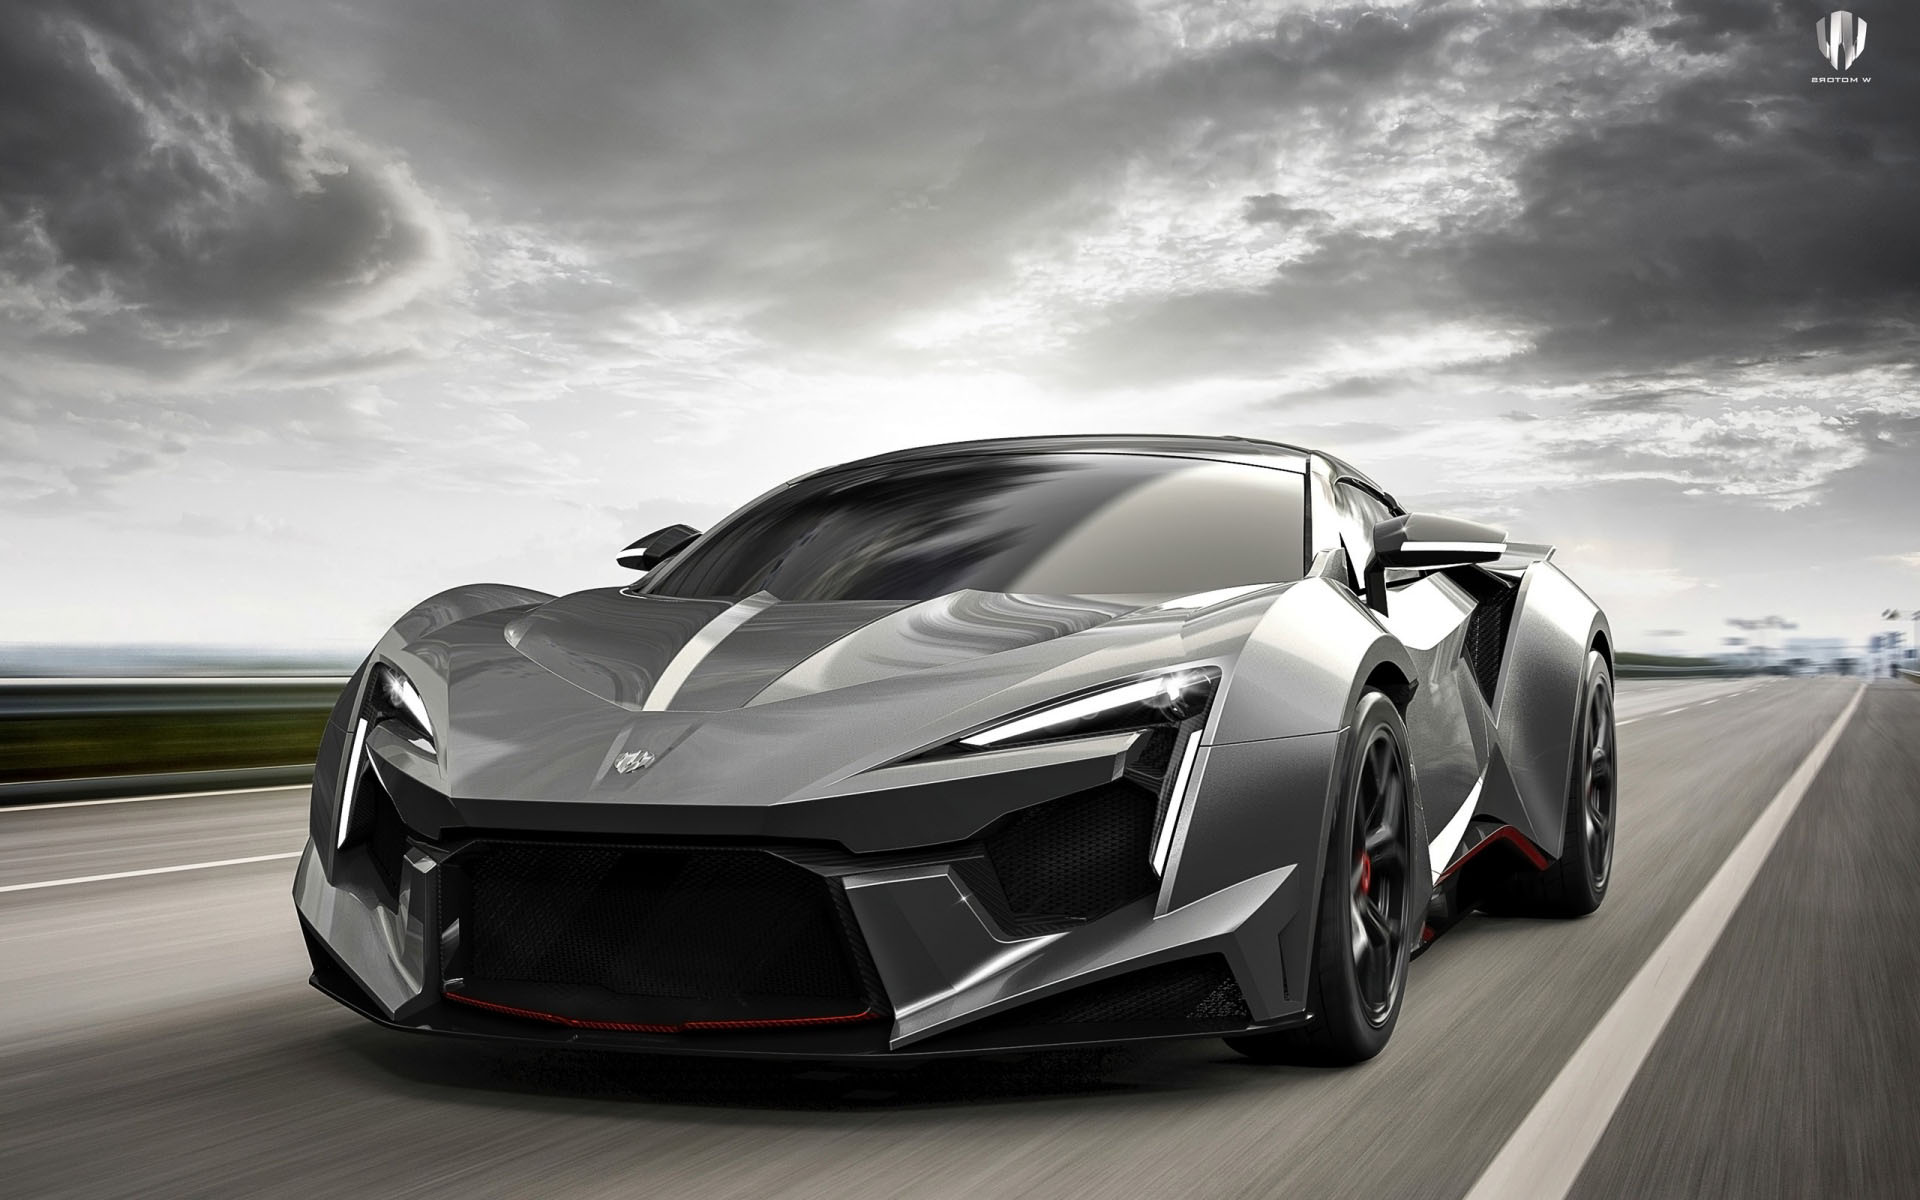 69 super car wallpaper on wallpapersafari - Car desktop wallpaper ...